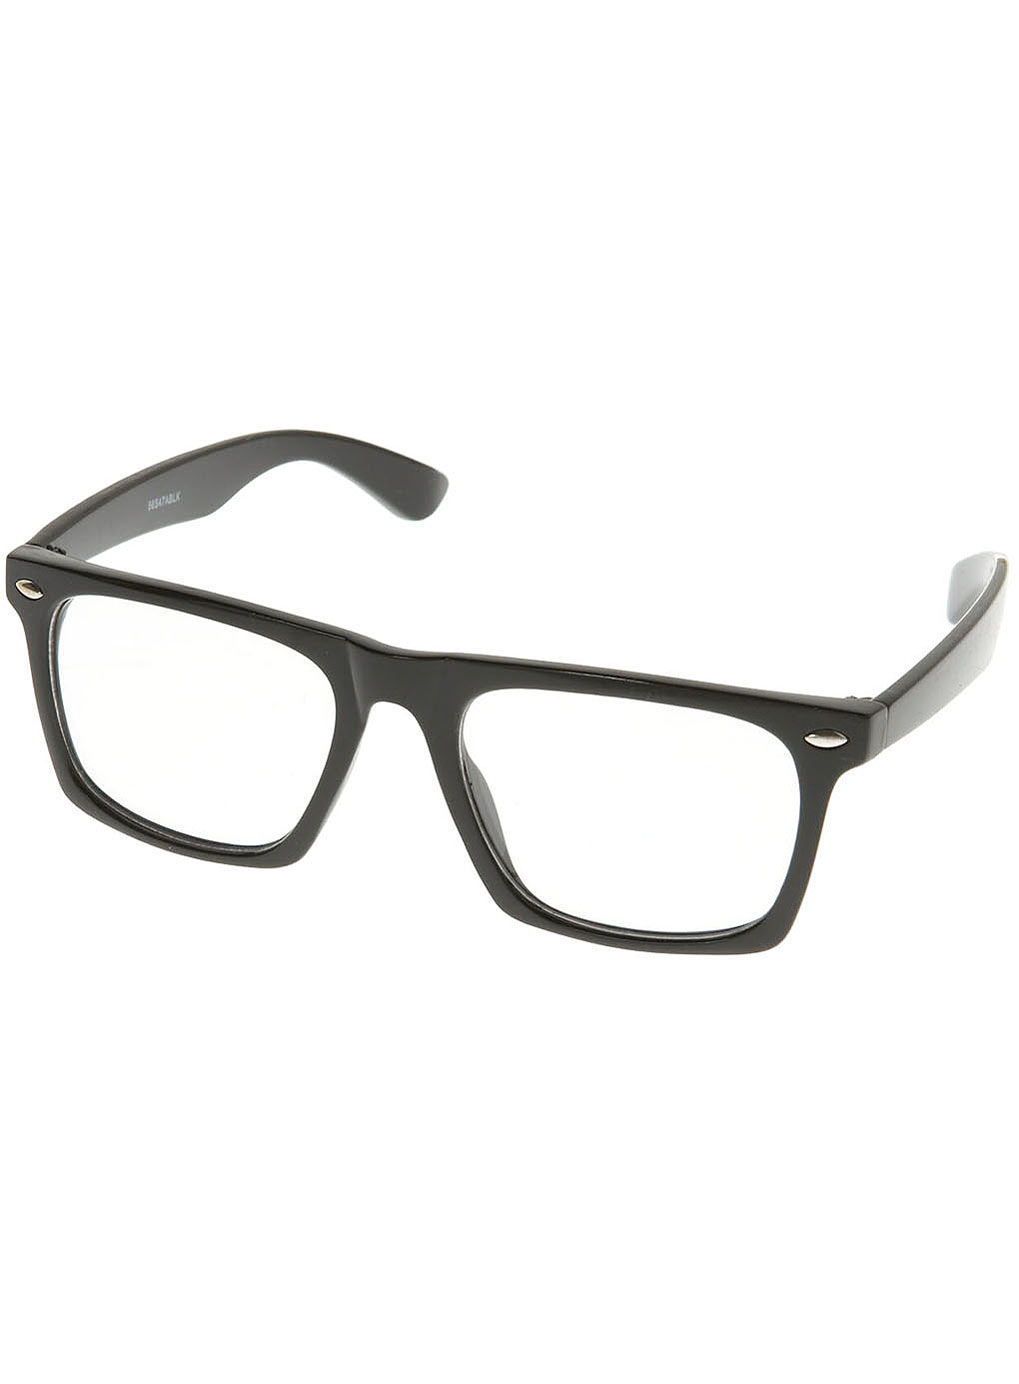 Black Glasses With Holes